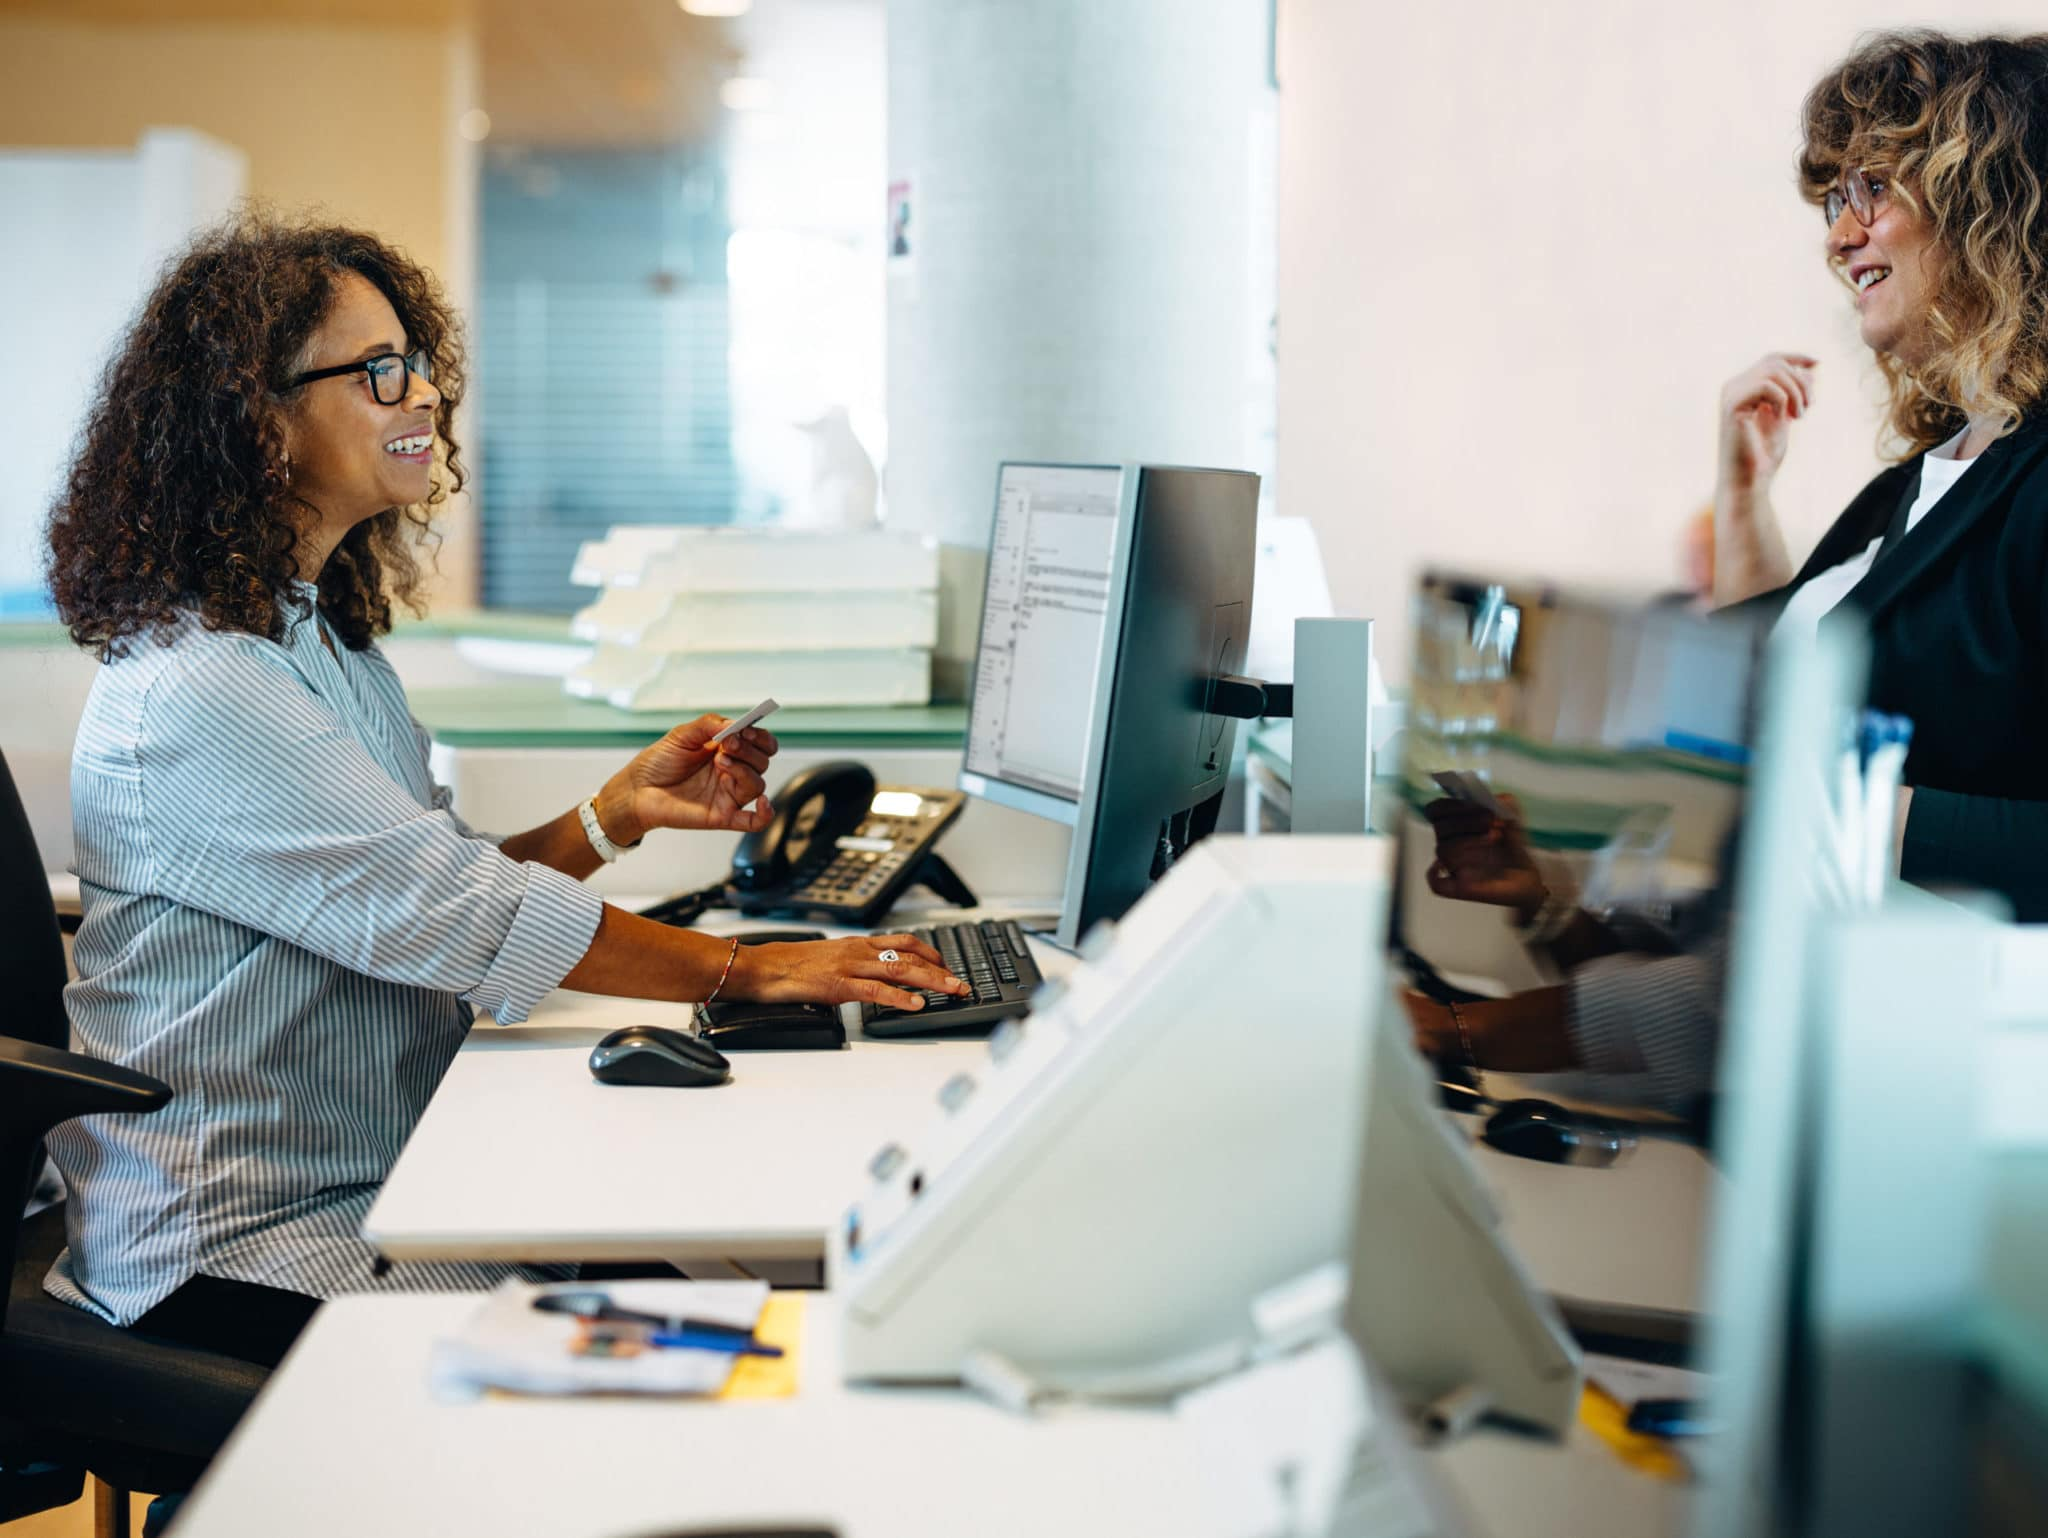 Woman office administrator sitting at desk and smiling while assisting a woman standing at her desk.